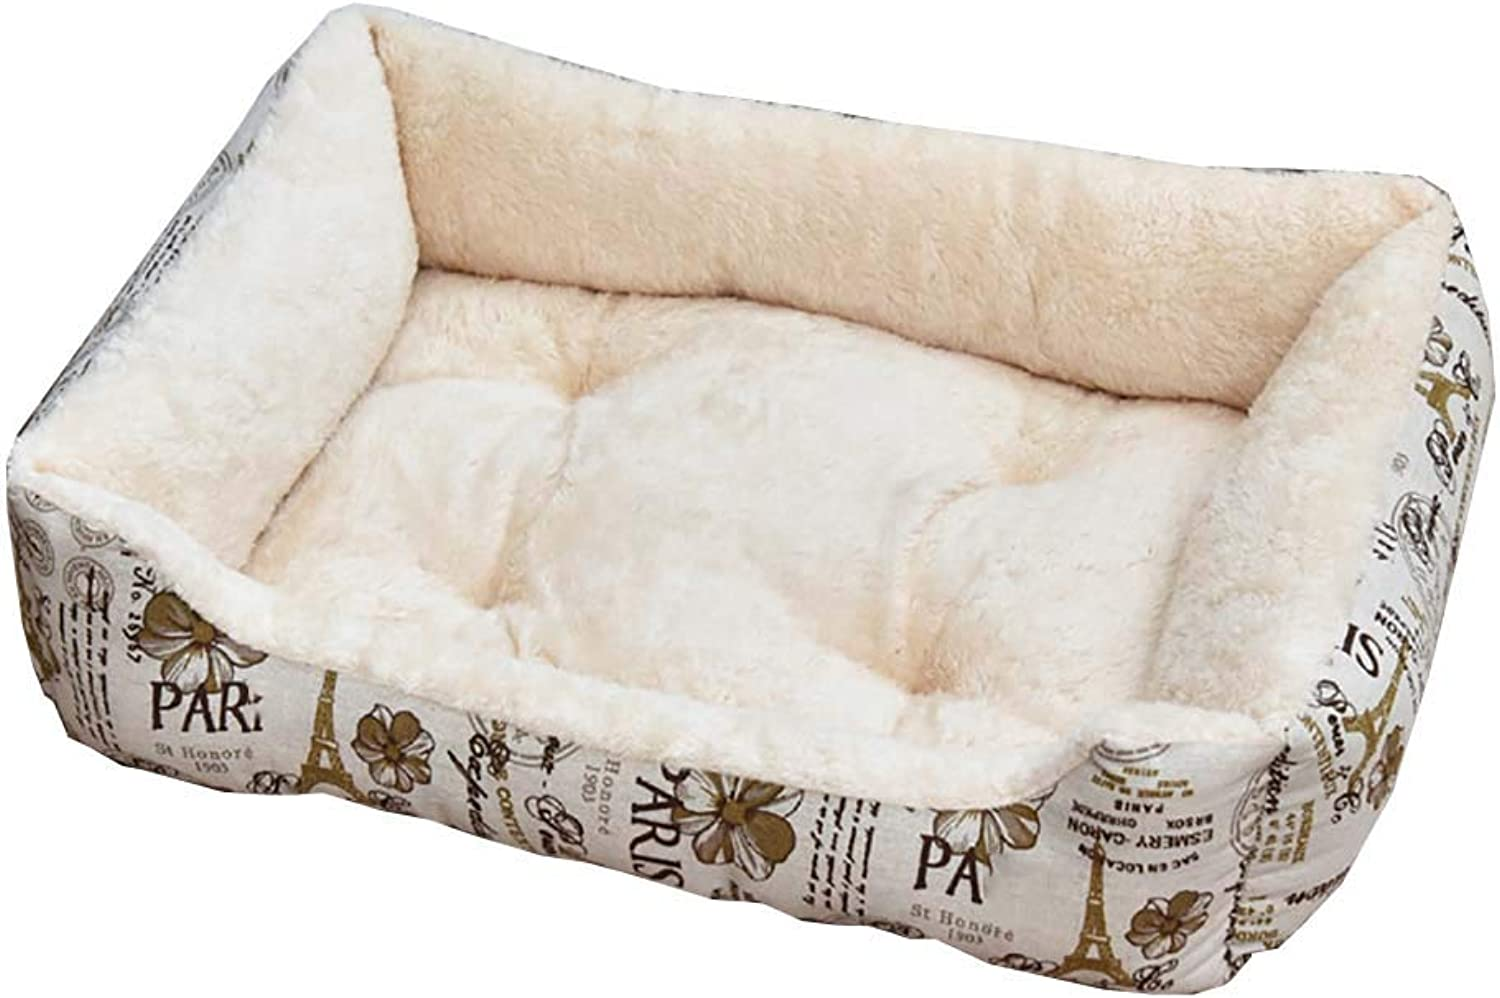 Dog bed Cat Houses Plush Dog & Cat Beds Ideal Crates Small & Large Pet, Dog & Cat Houses Medium Pets (color   Style4, Size   70x52x15cm)